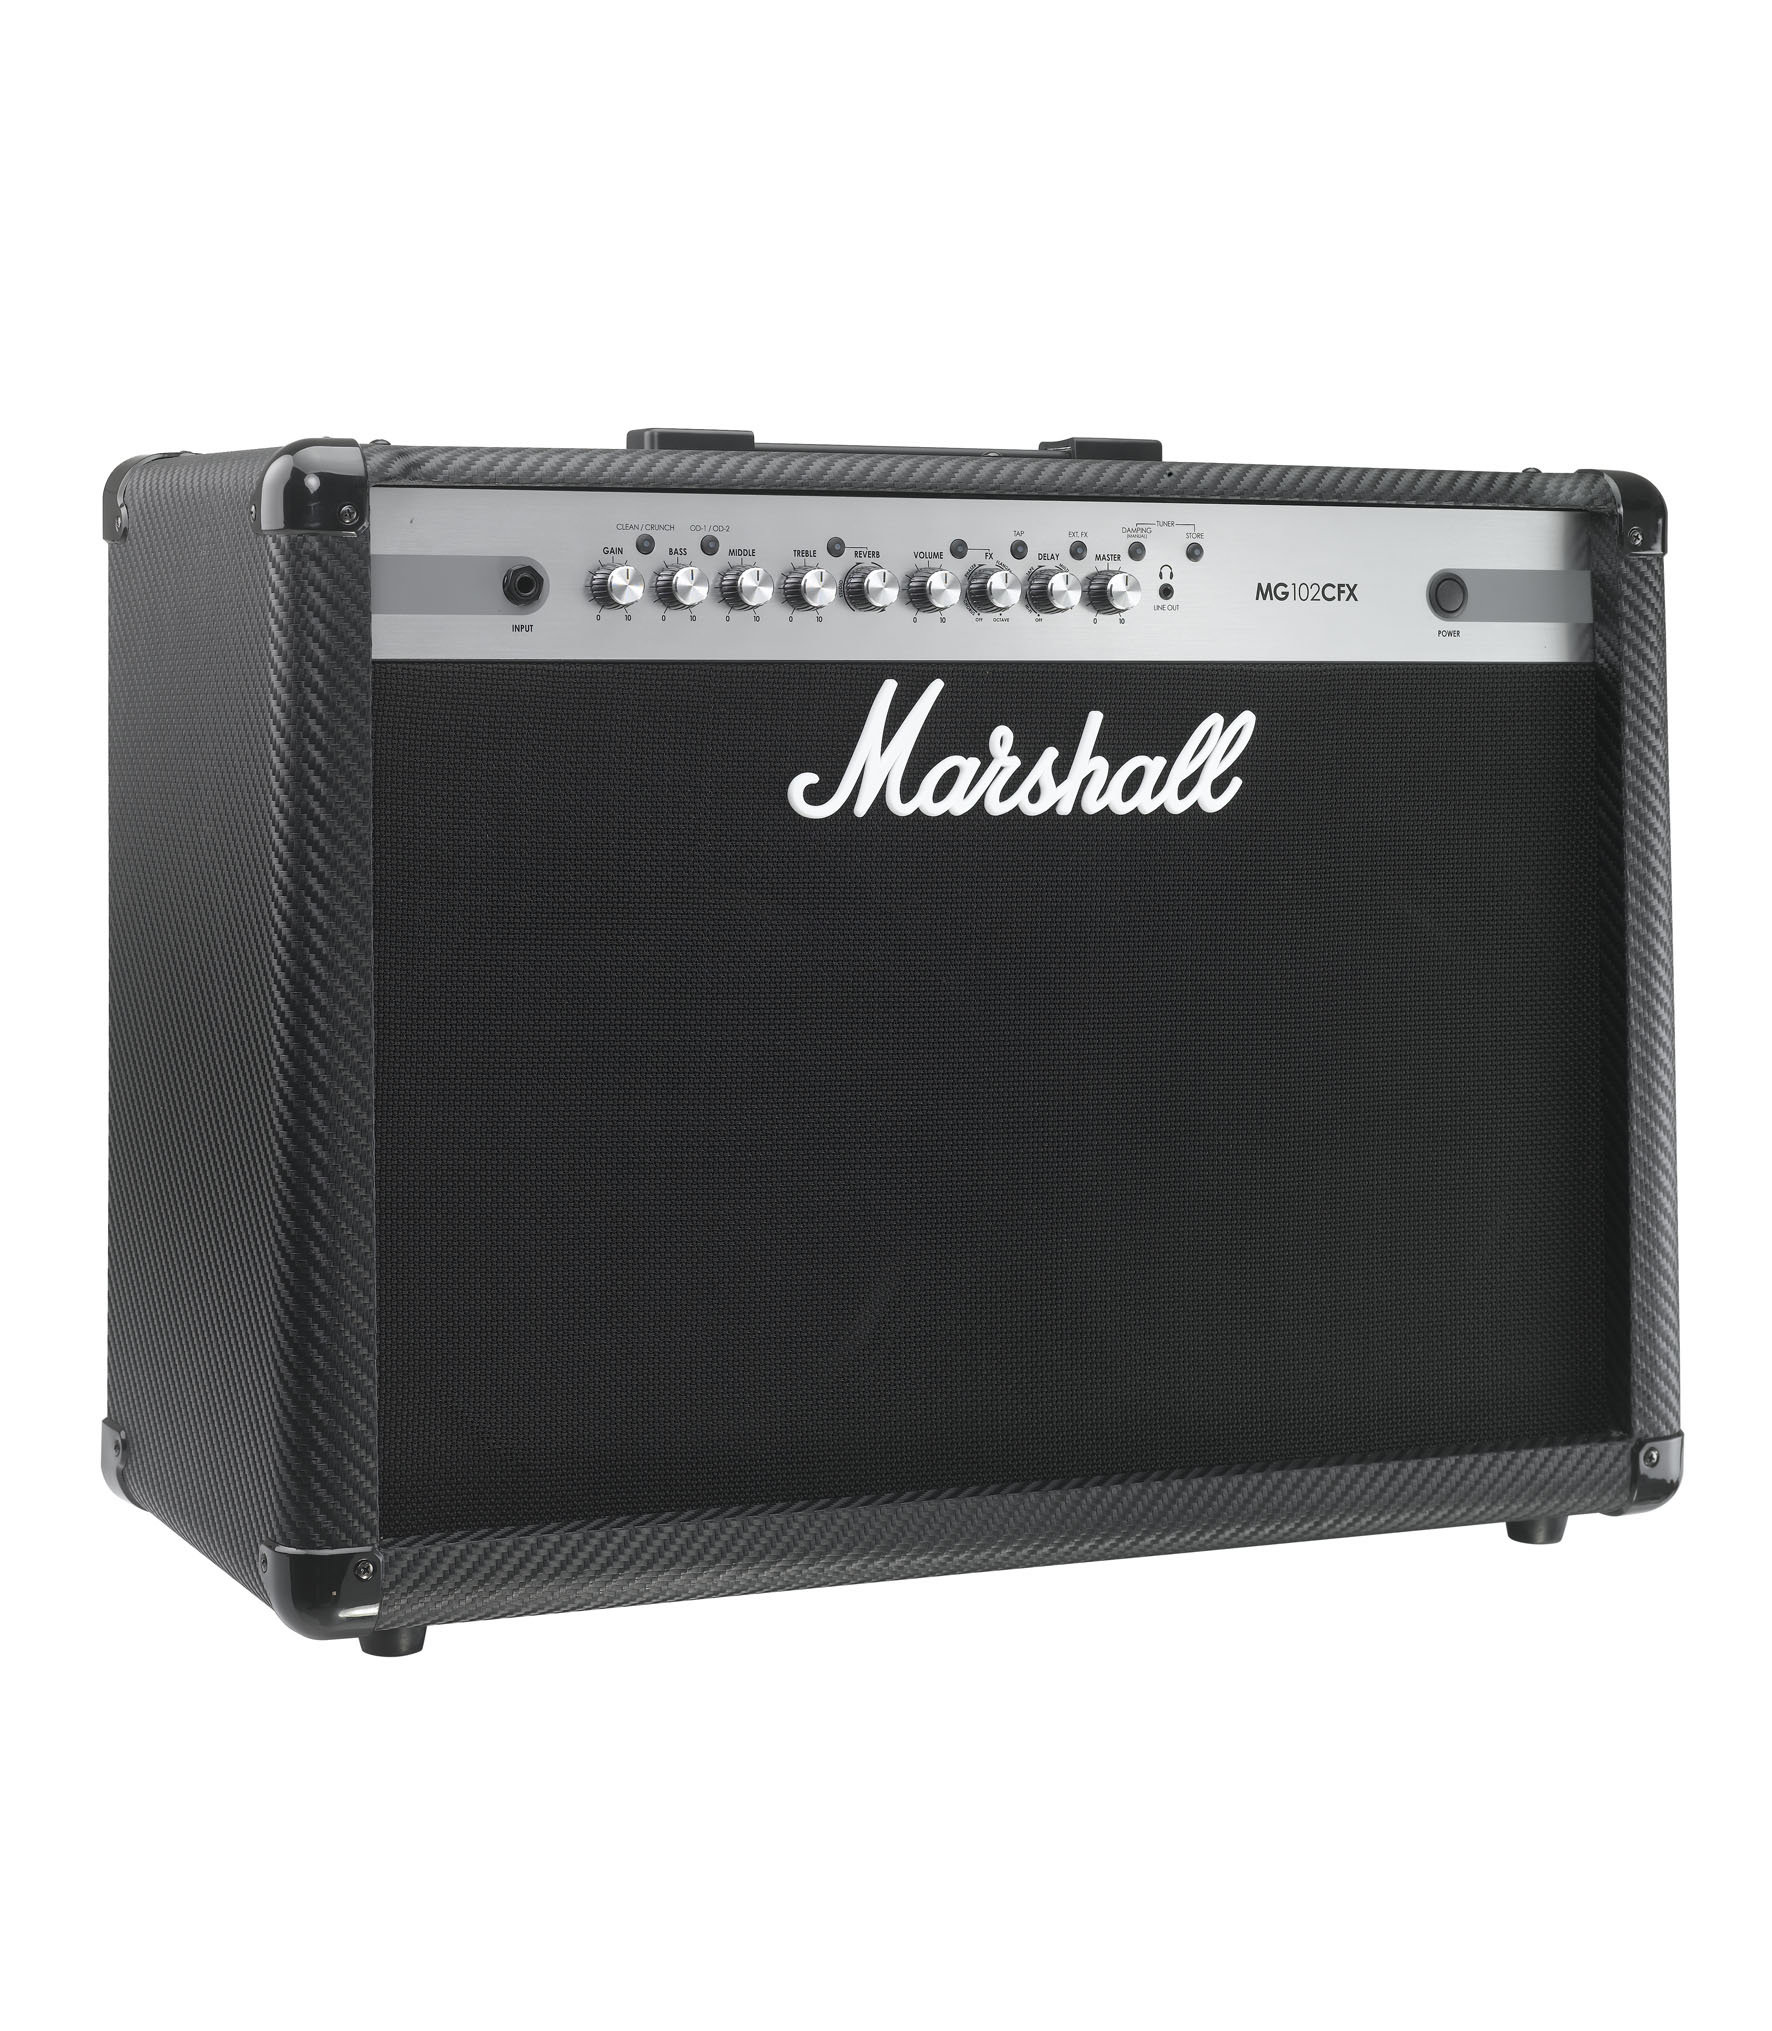 marshall - MG102CFX - Melody House Musical Instruments